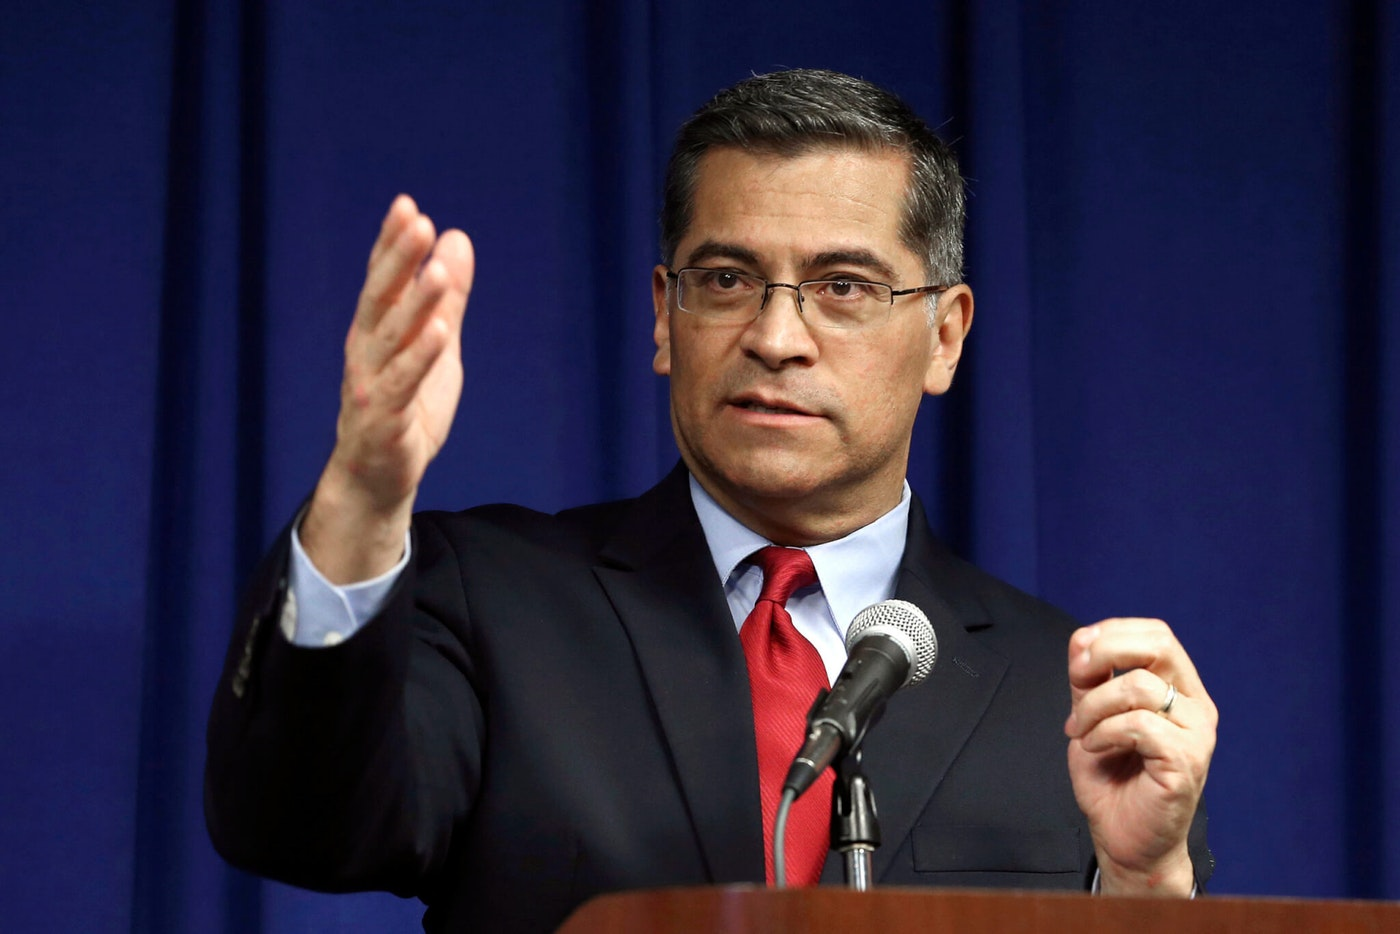 Attorney general Xavier Becerra standing at microphone speaking and gesturing with hand